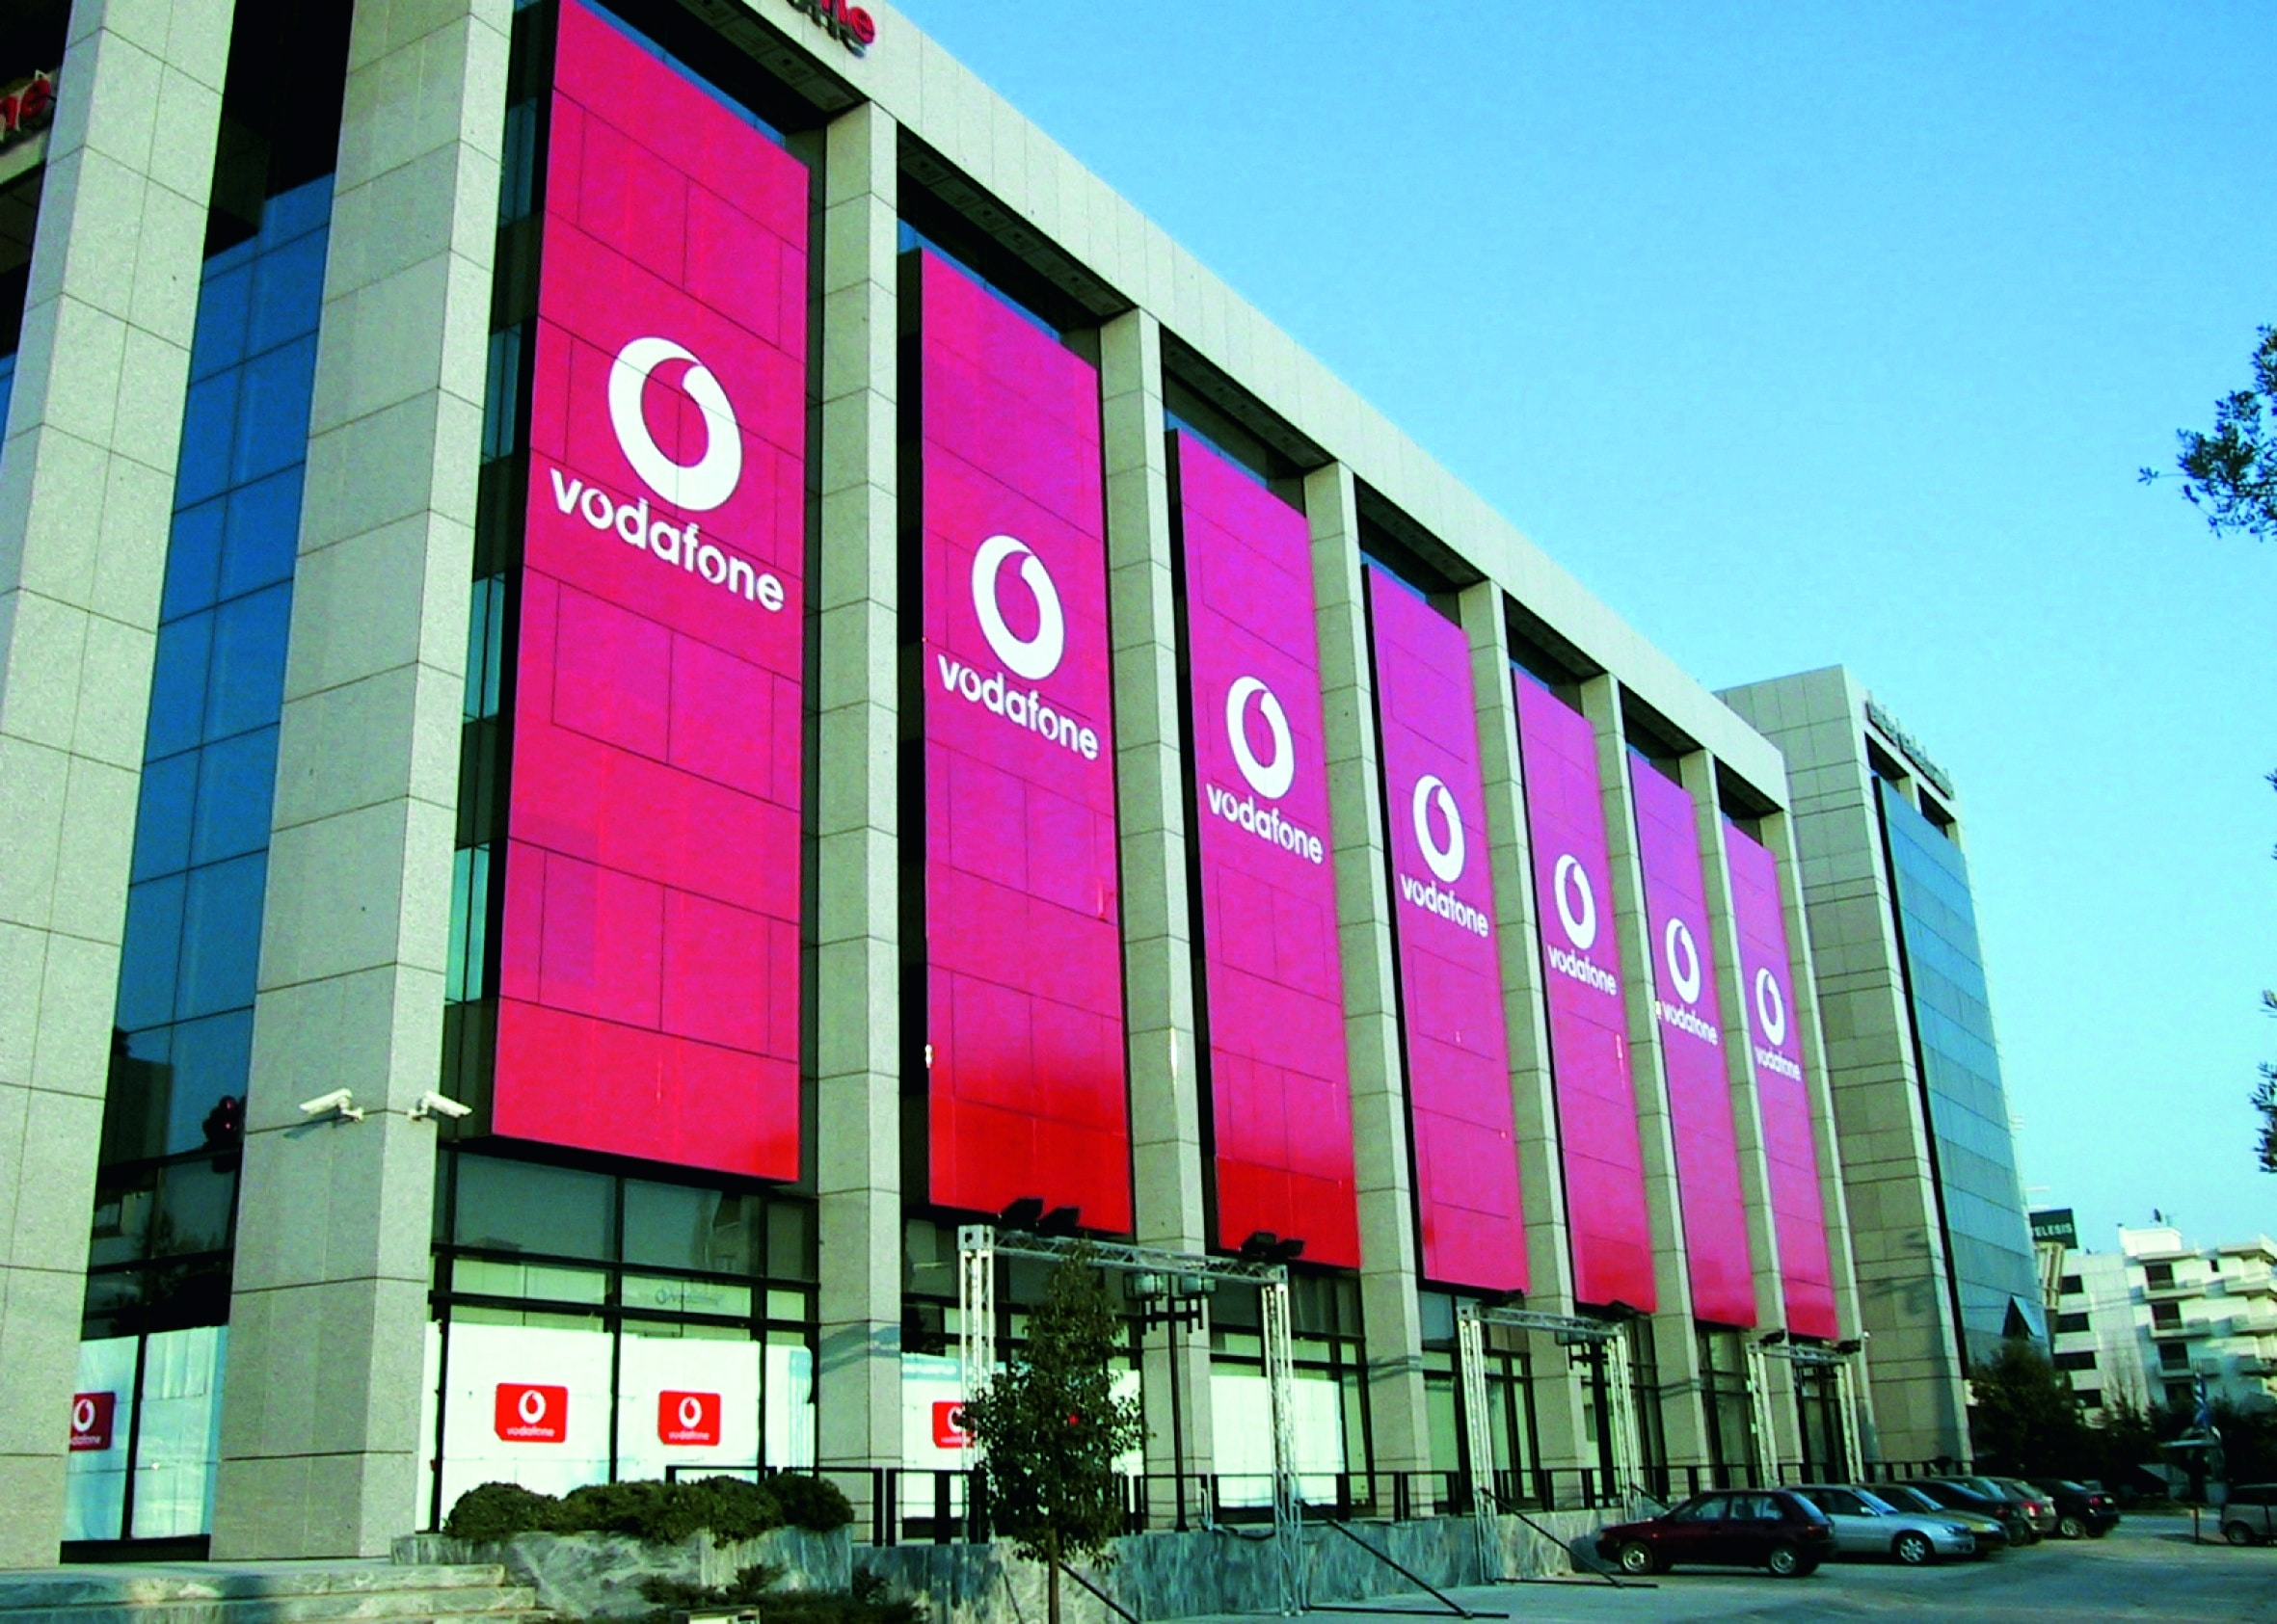 vodafone-banners